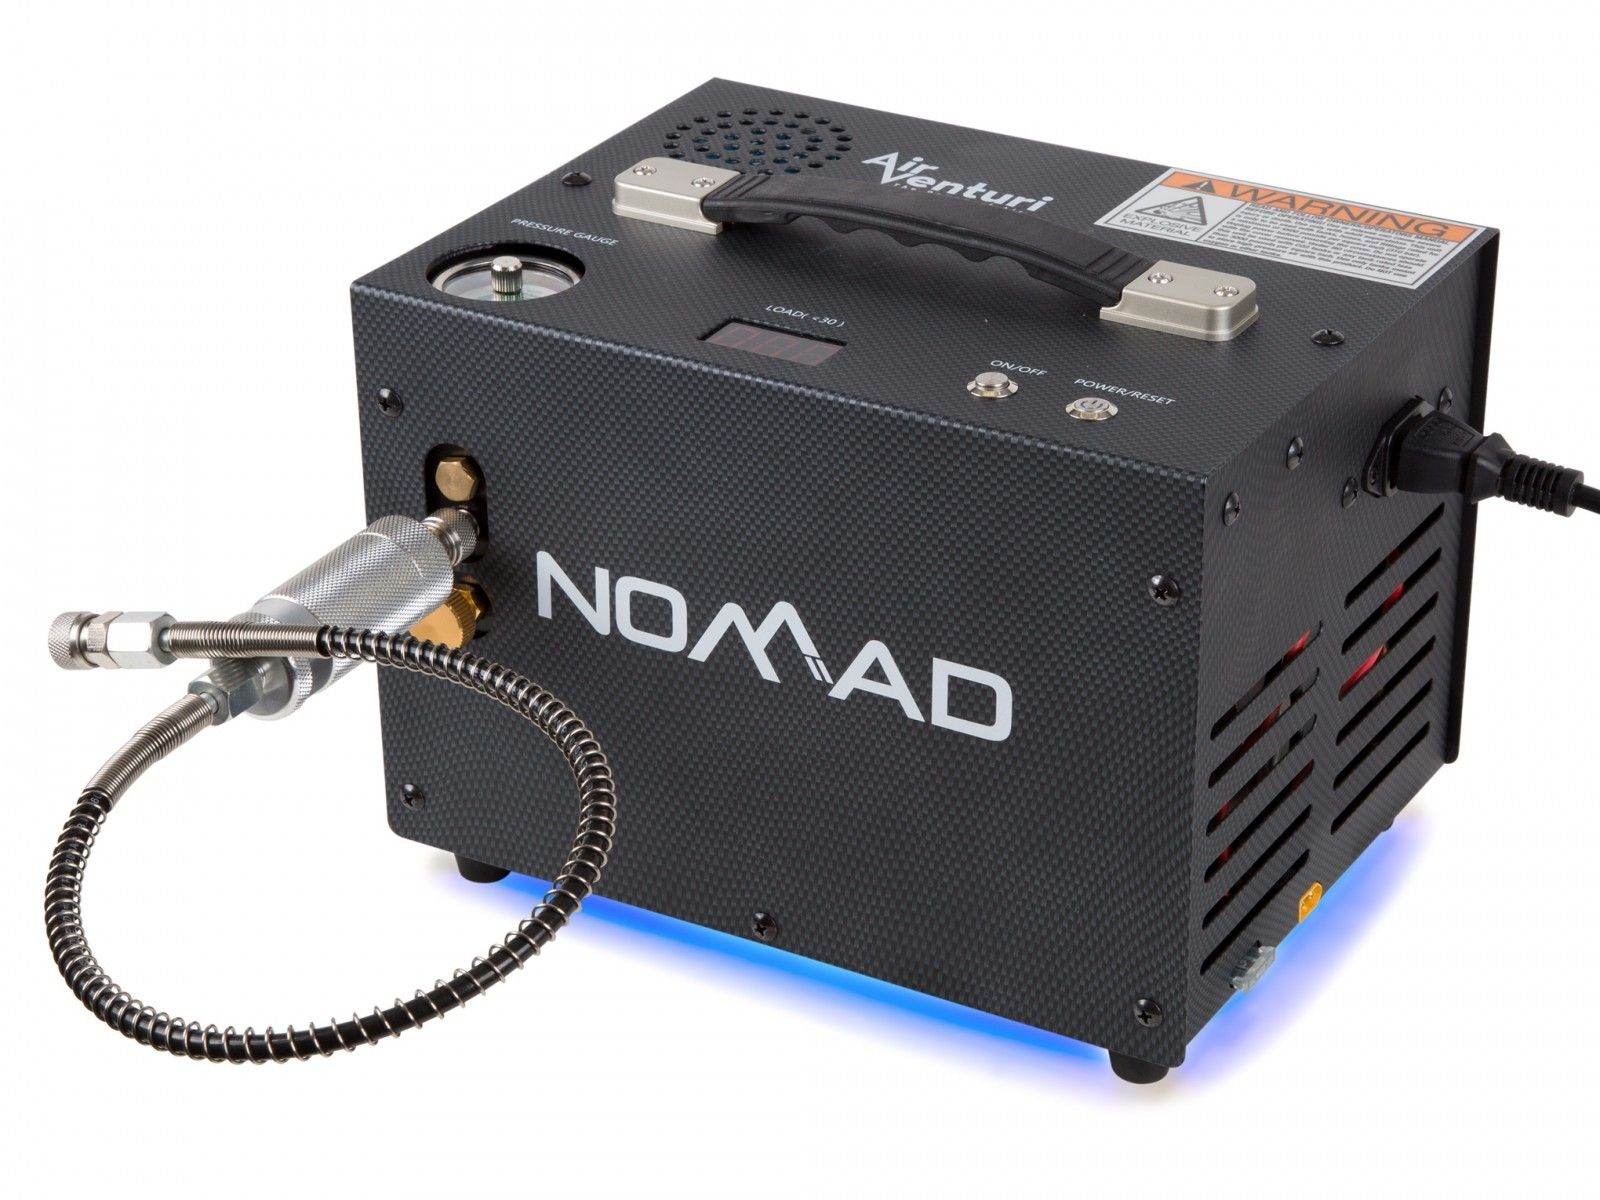 Nomad II 4500 psi Air Compressor